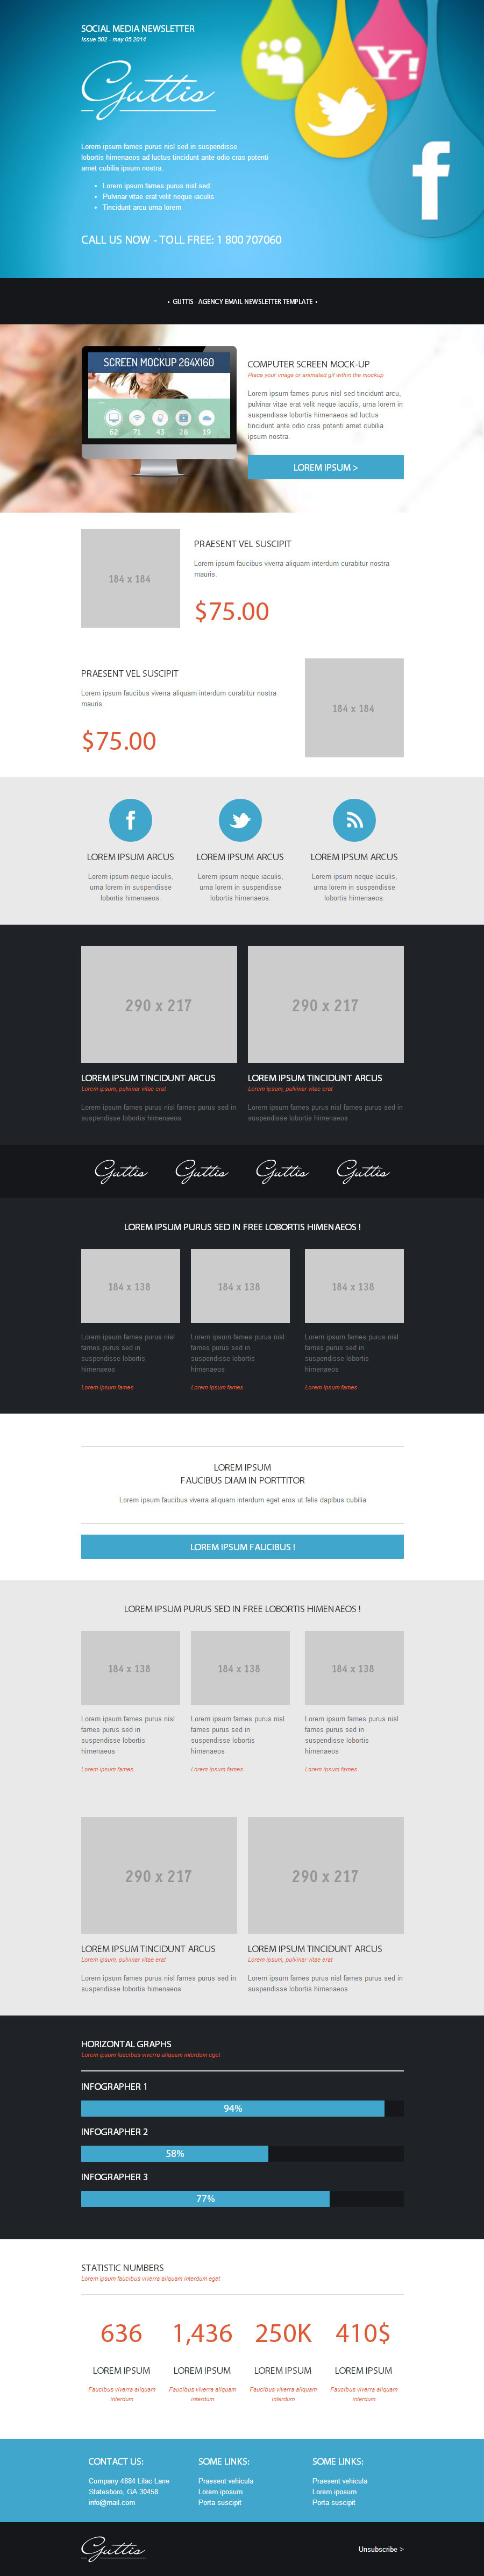 Guttis - Responsive Email Newsletter Template by robbiewilliams ...